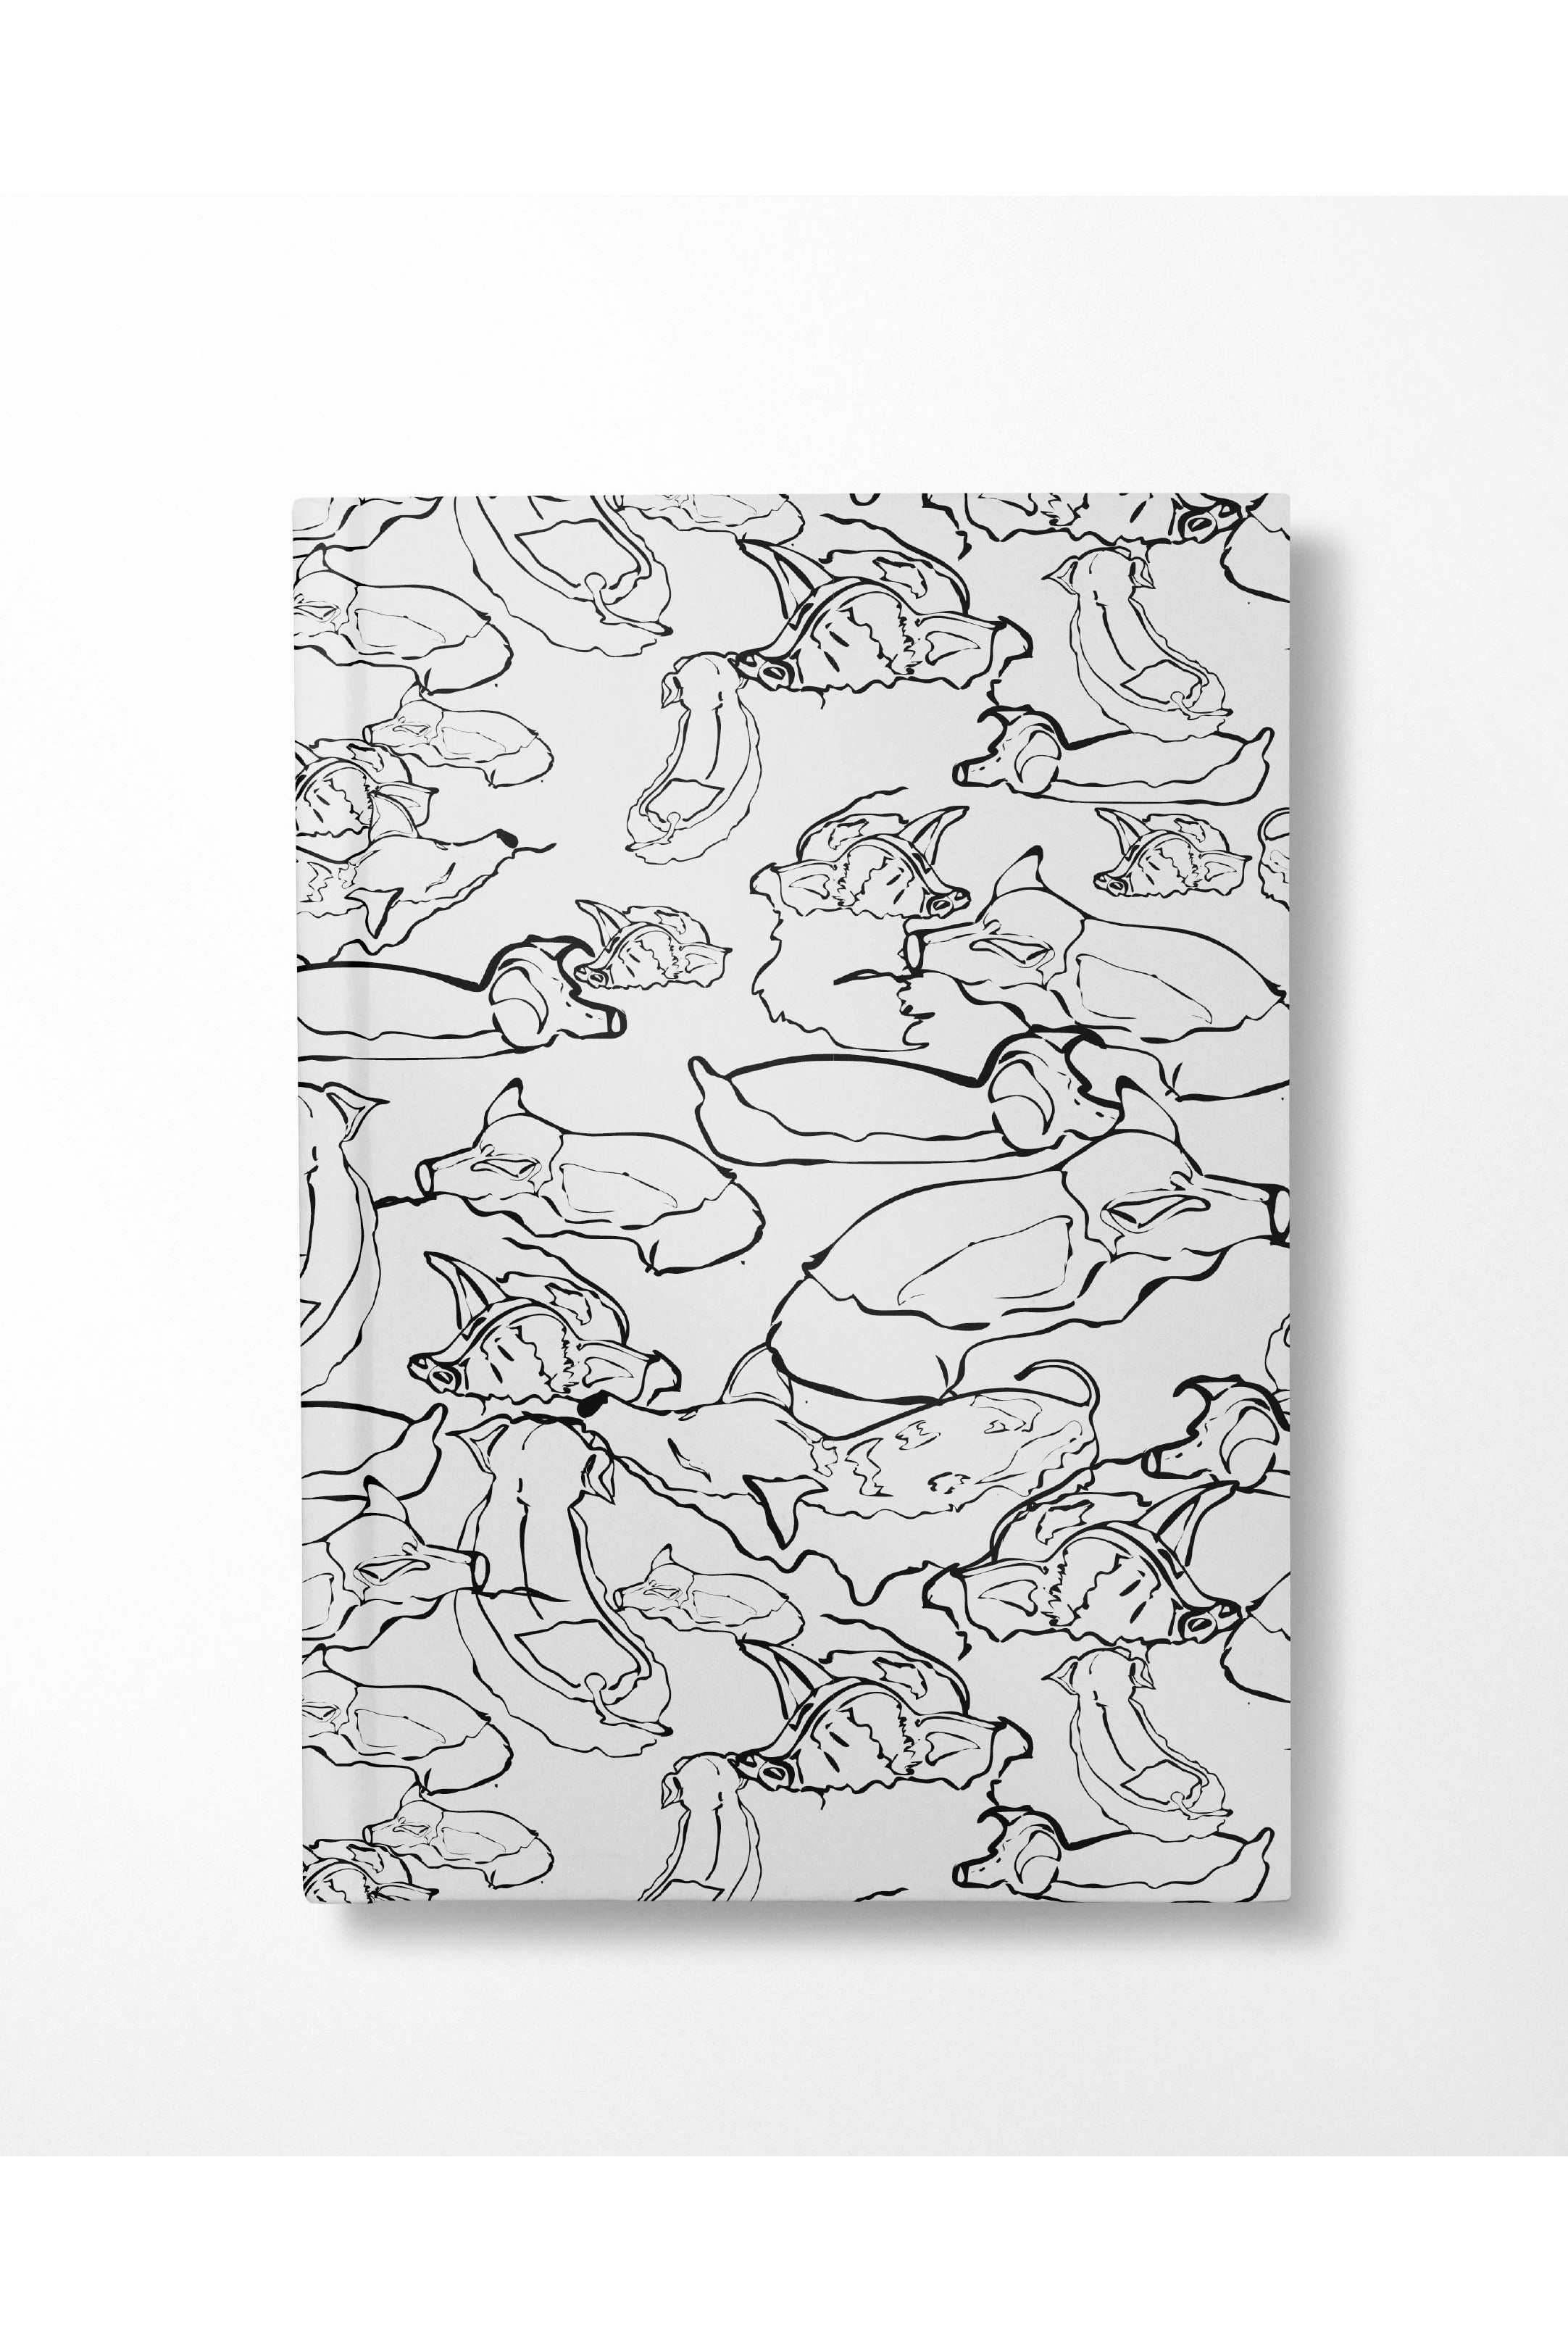 Swimming With The Pigs Notebook - Black - Hausofassembly